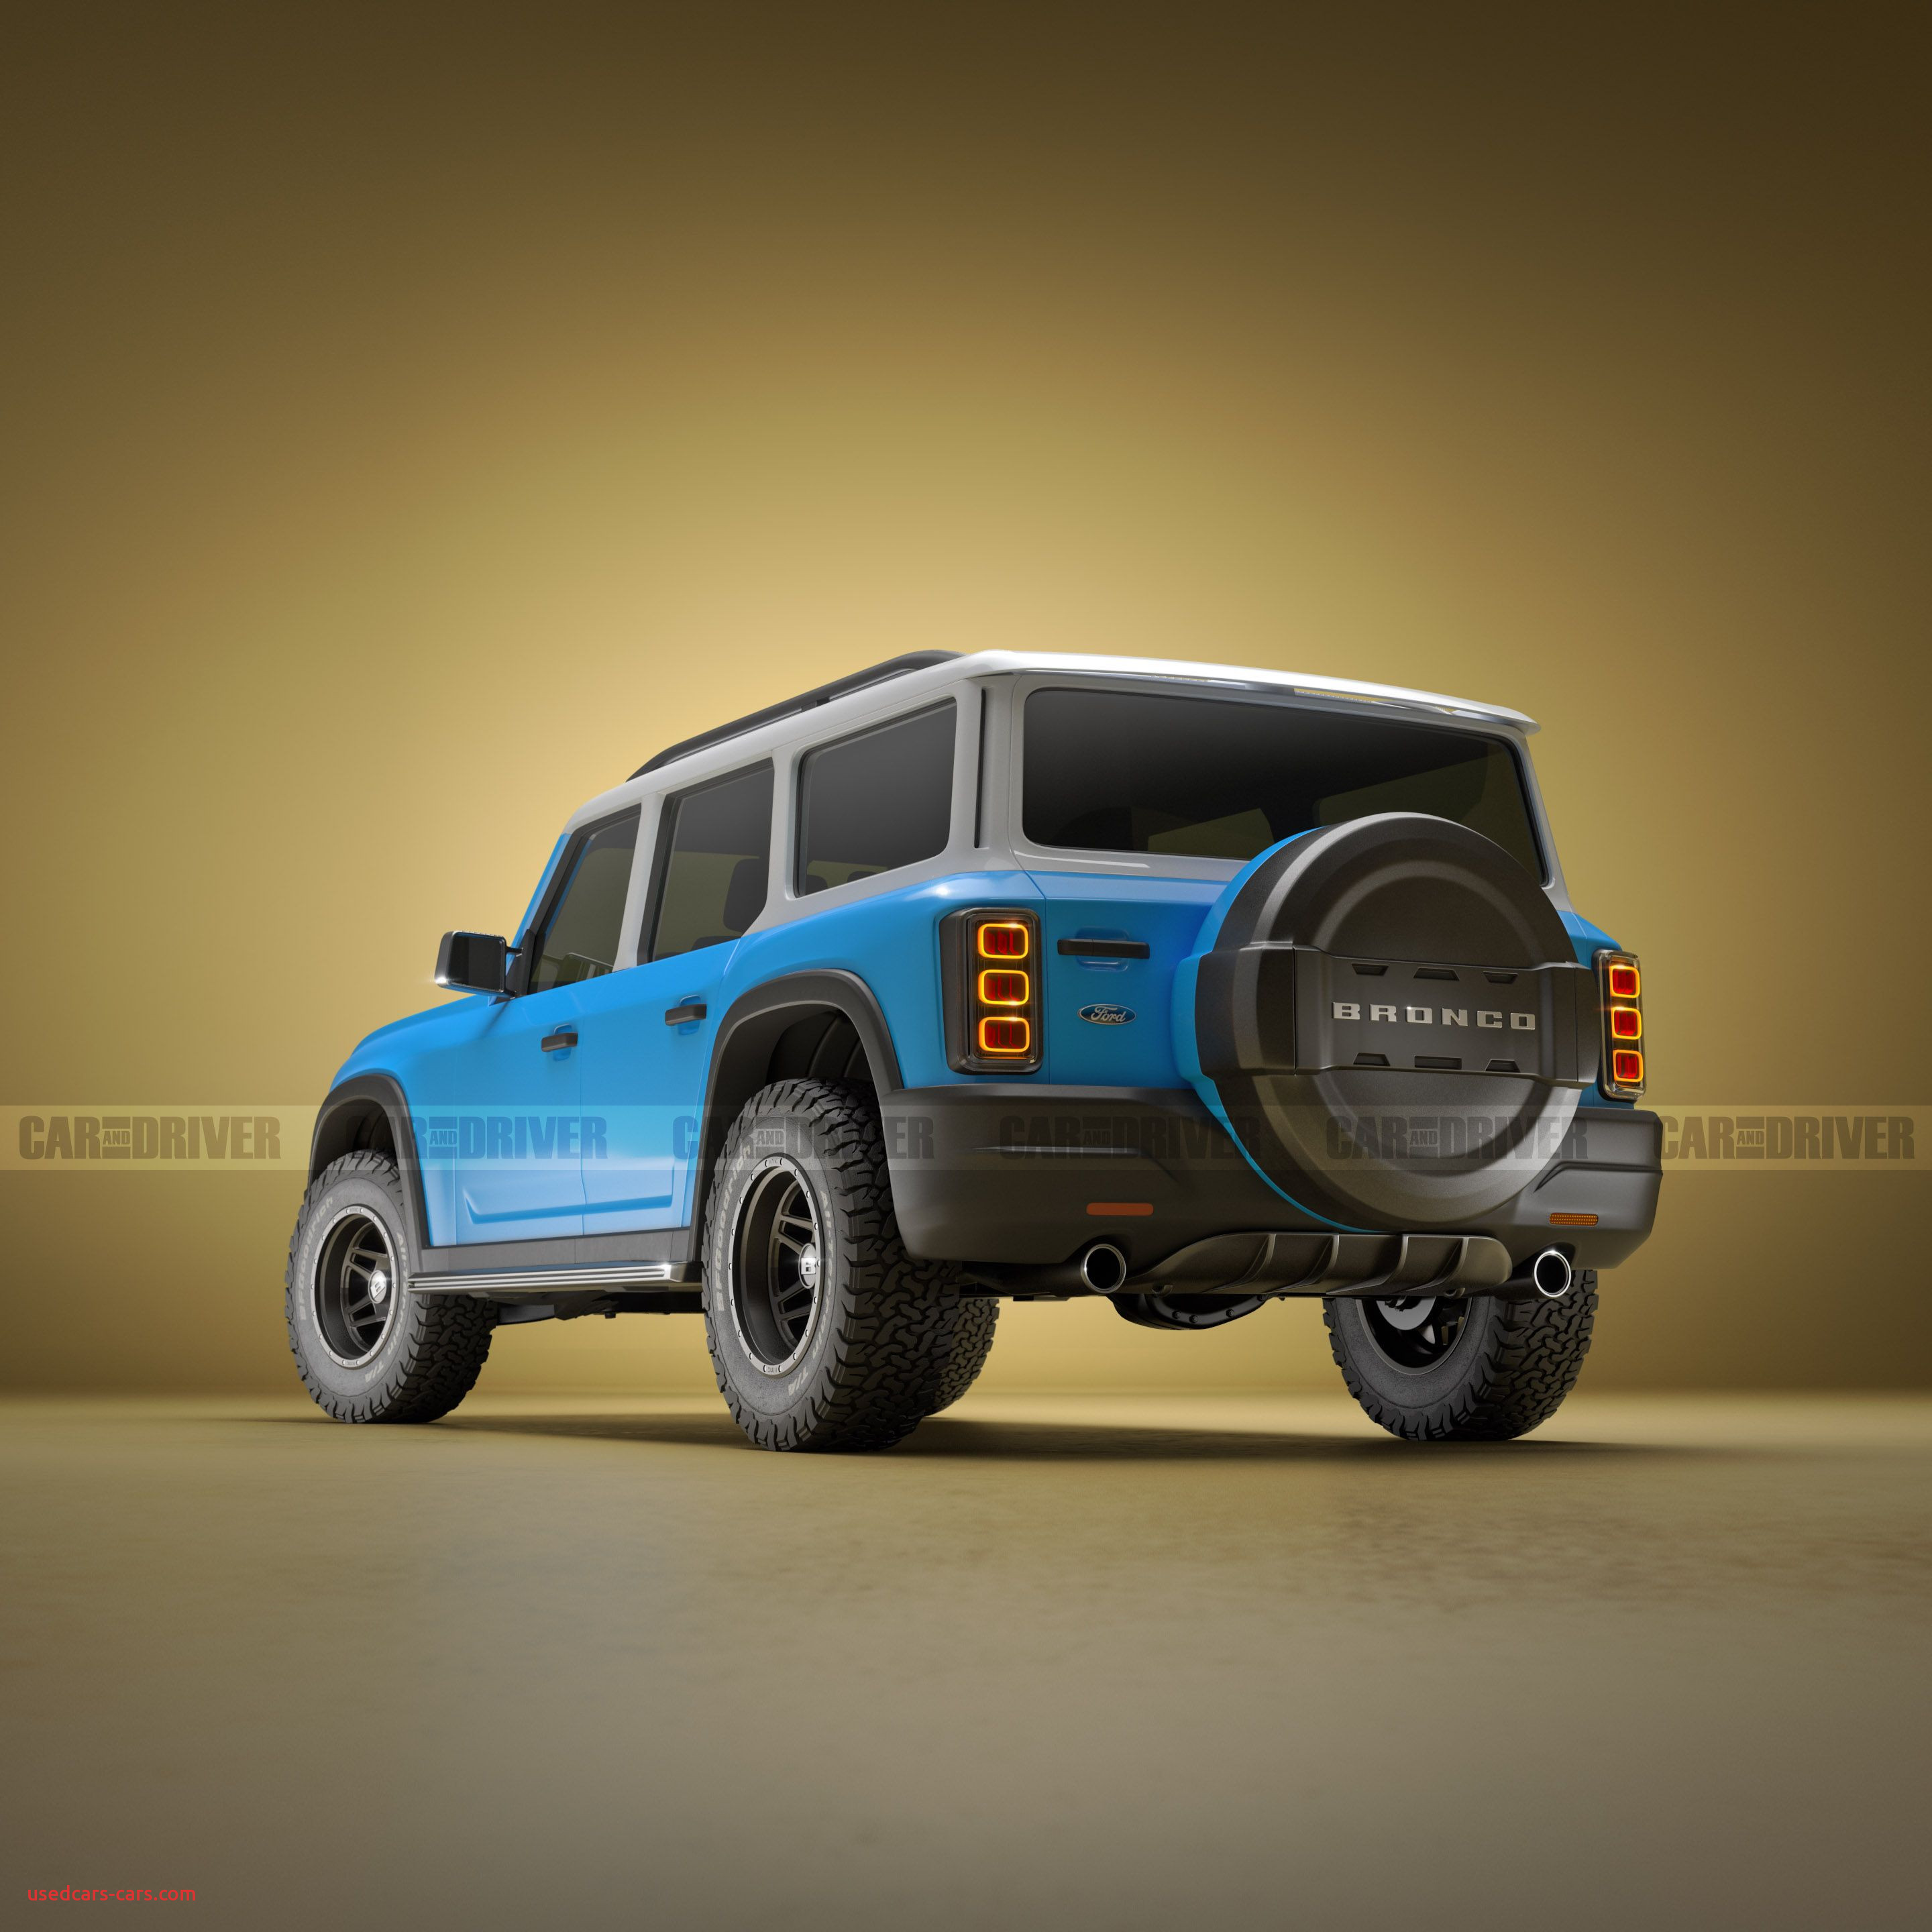 new ford bronco rendering by nick kaloterakis 400